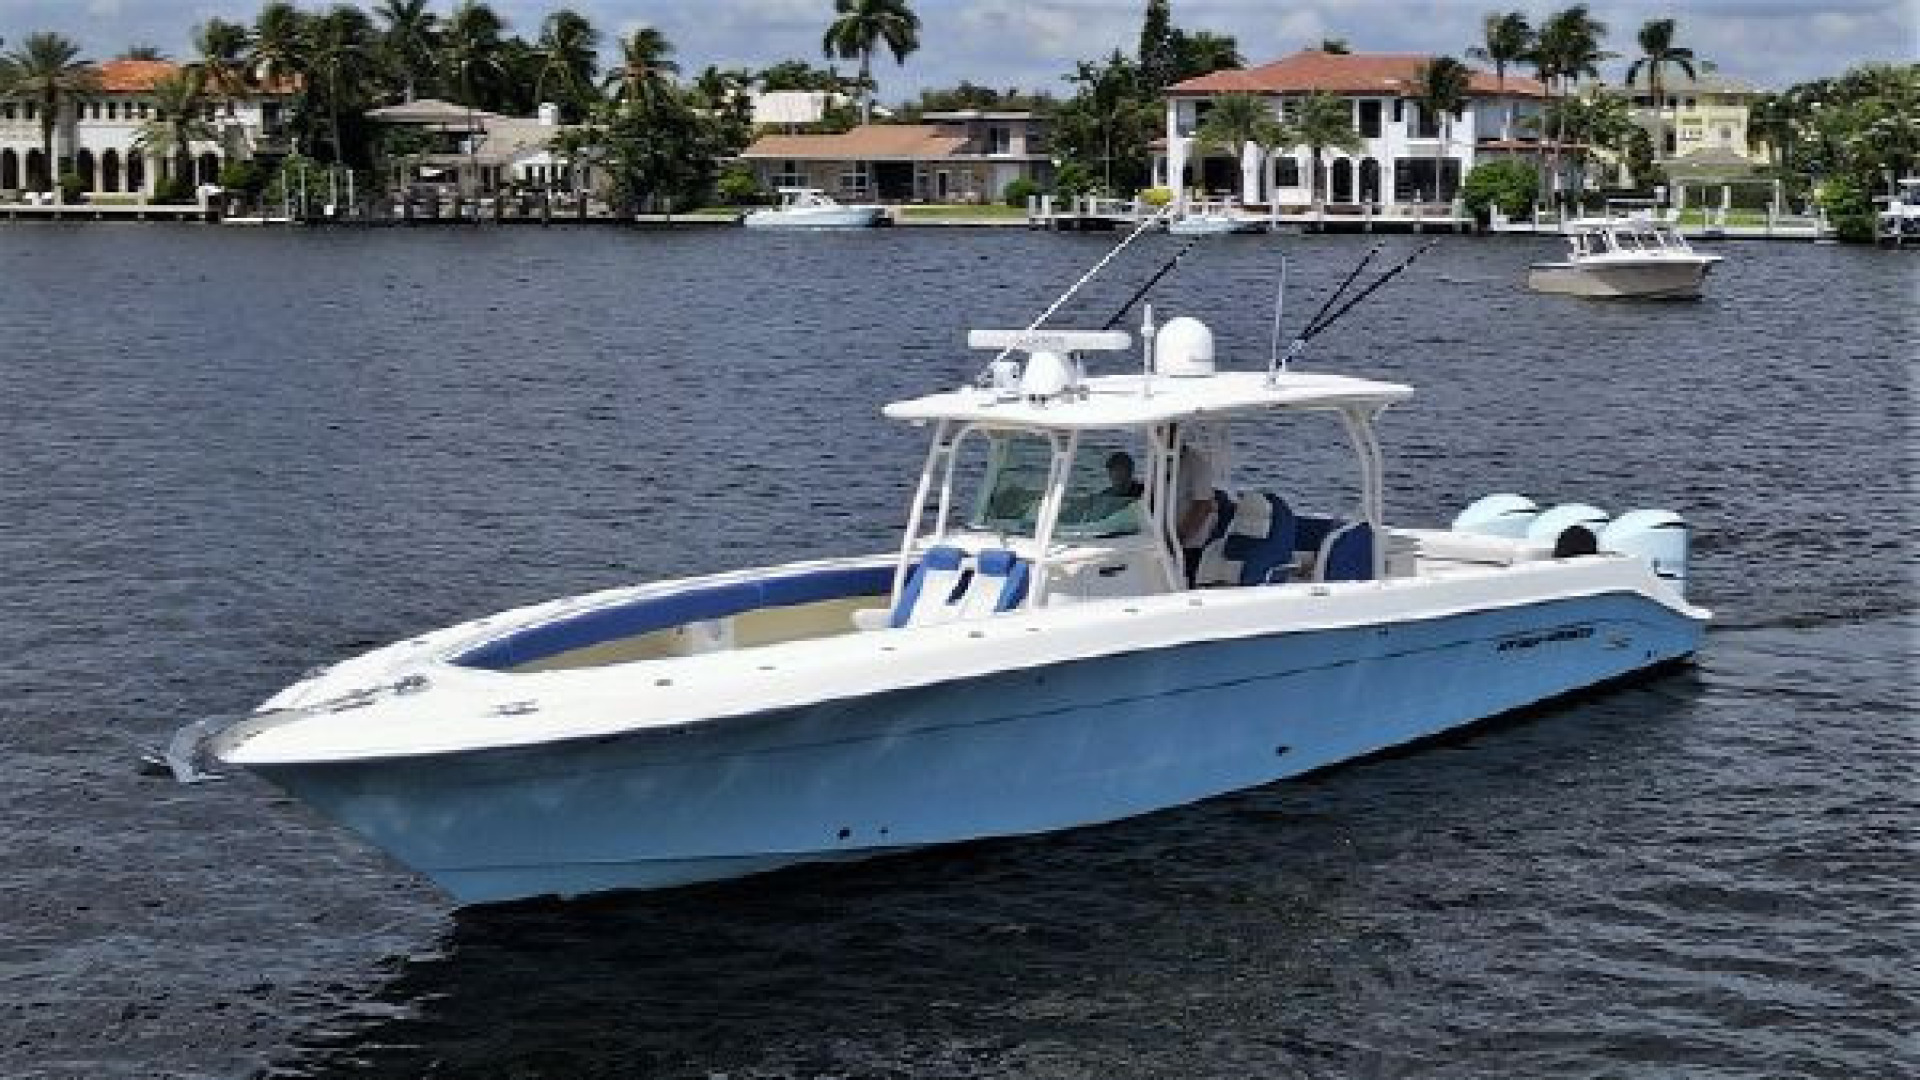 Hydra-Sports-42 Center Console 4200 SF 2011 -Fort Lauderdale-Florida-United States-1564153 | Thumbnail